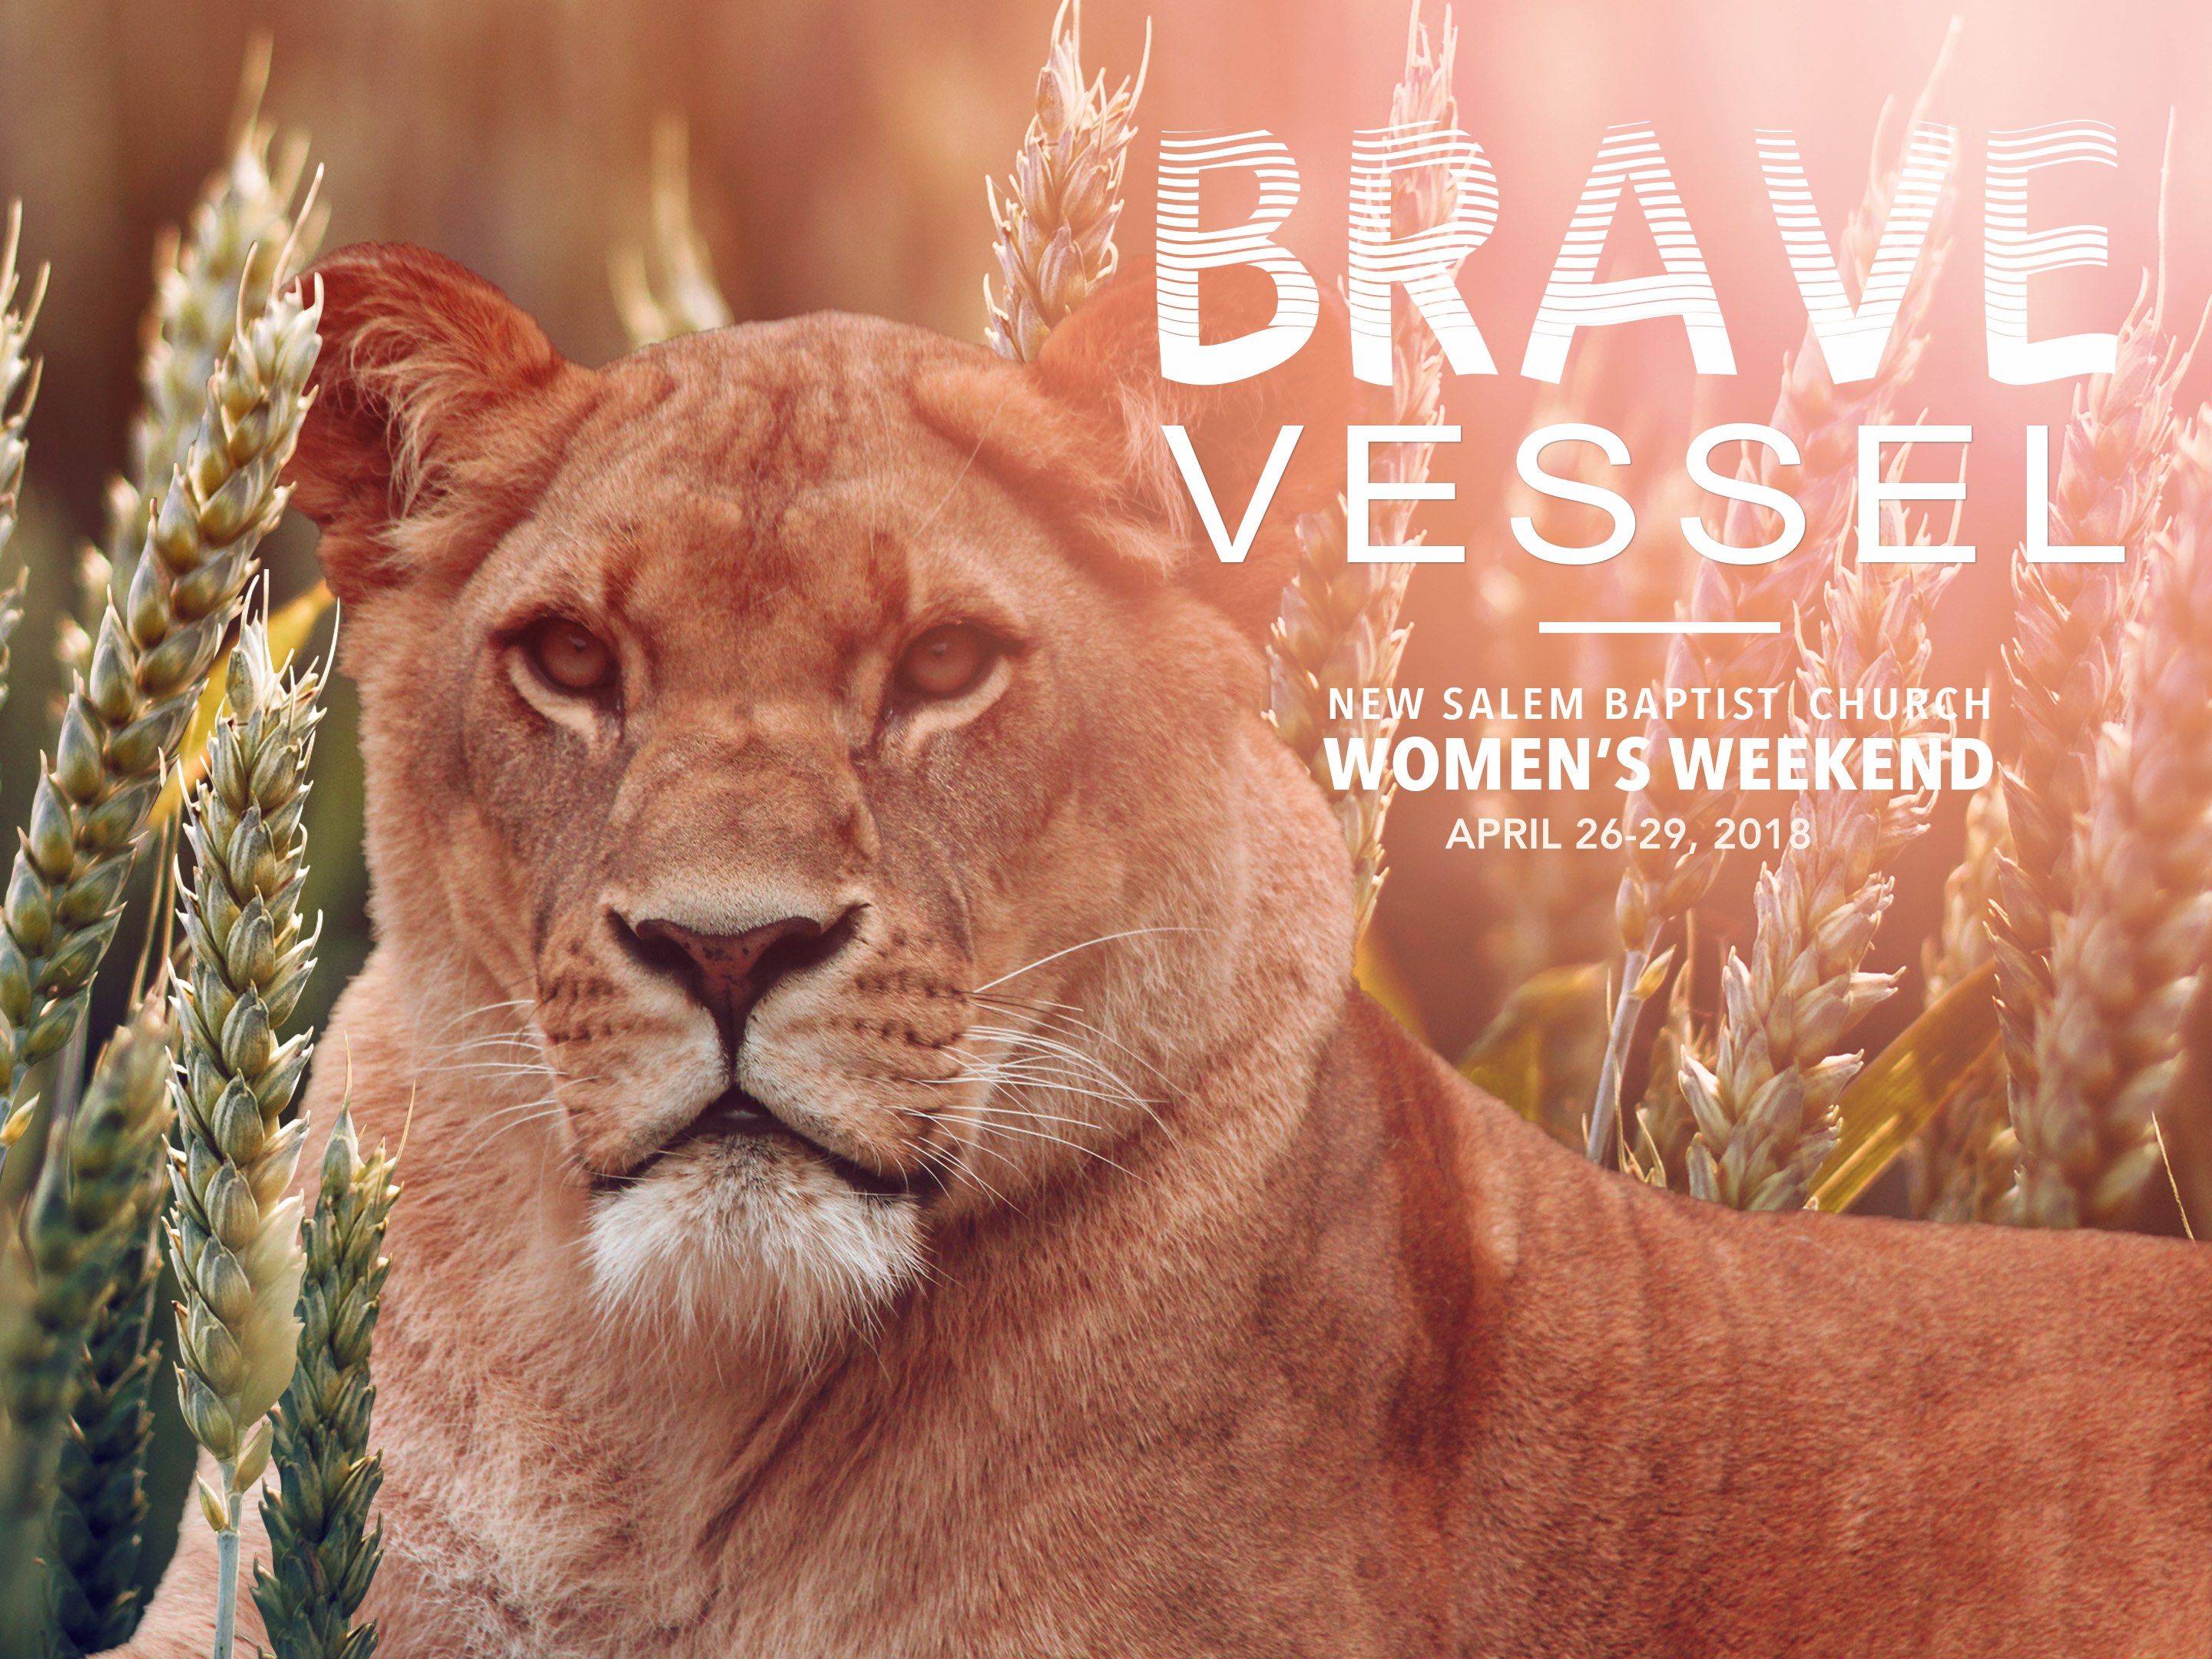 Women's Weekend 2018 - Brave Vessel